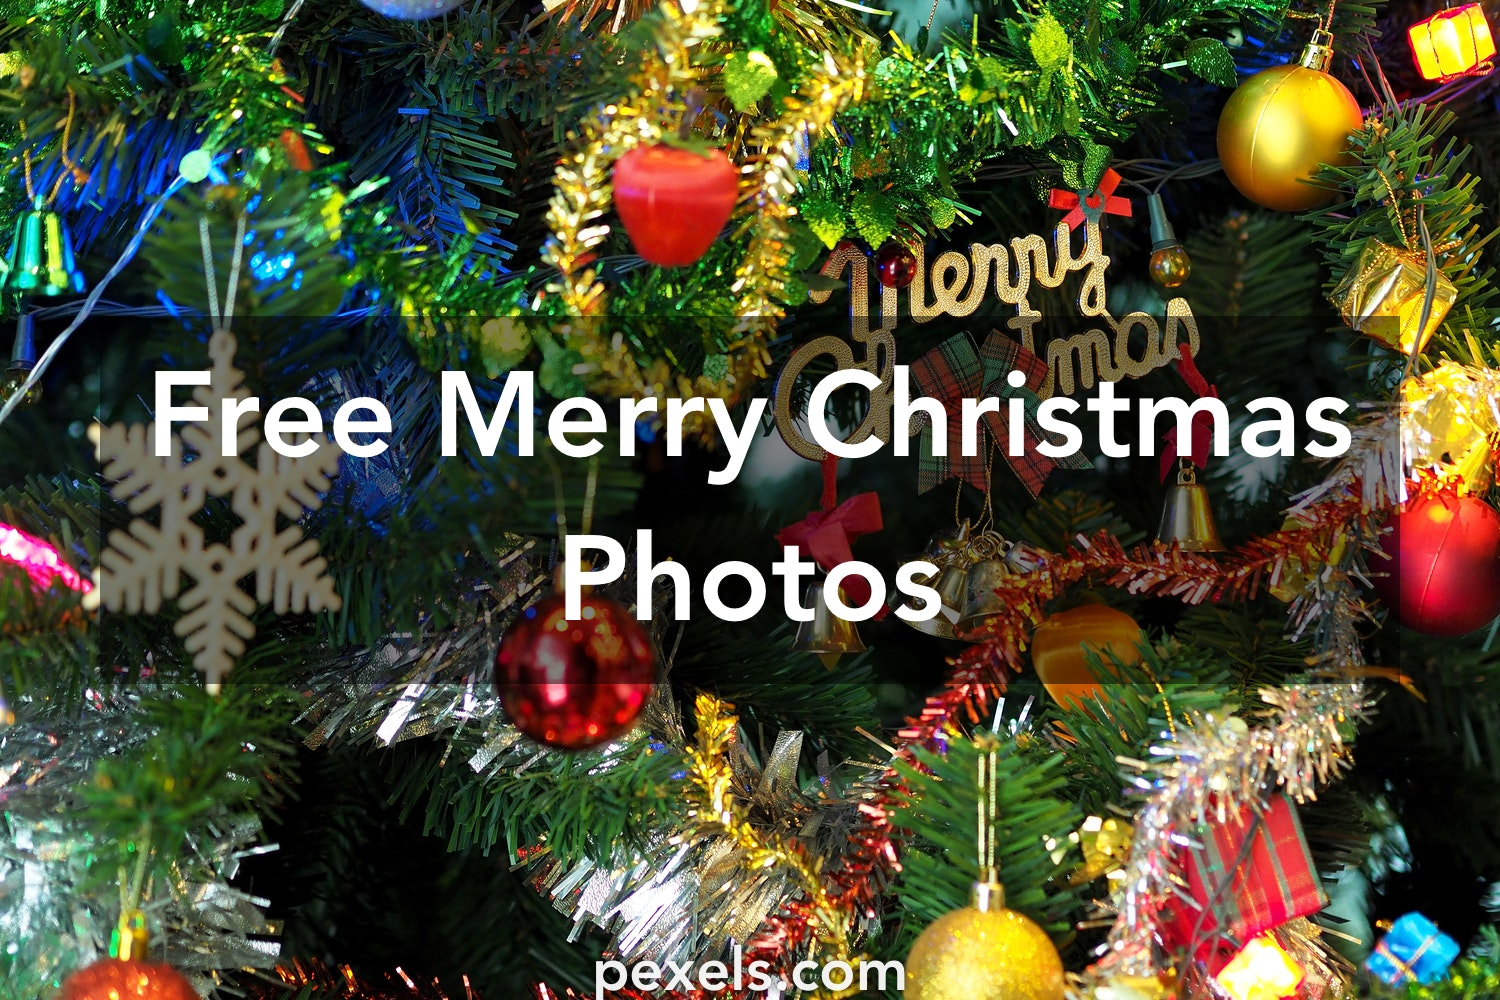 Christmas Images Free.1000 Interesting Merry Christmas Photos Pexels Free